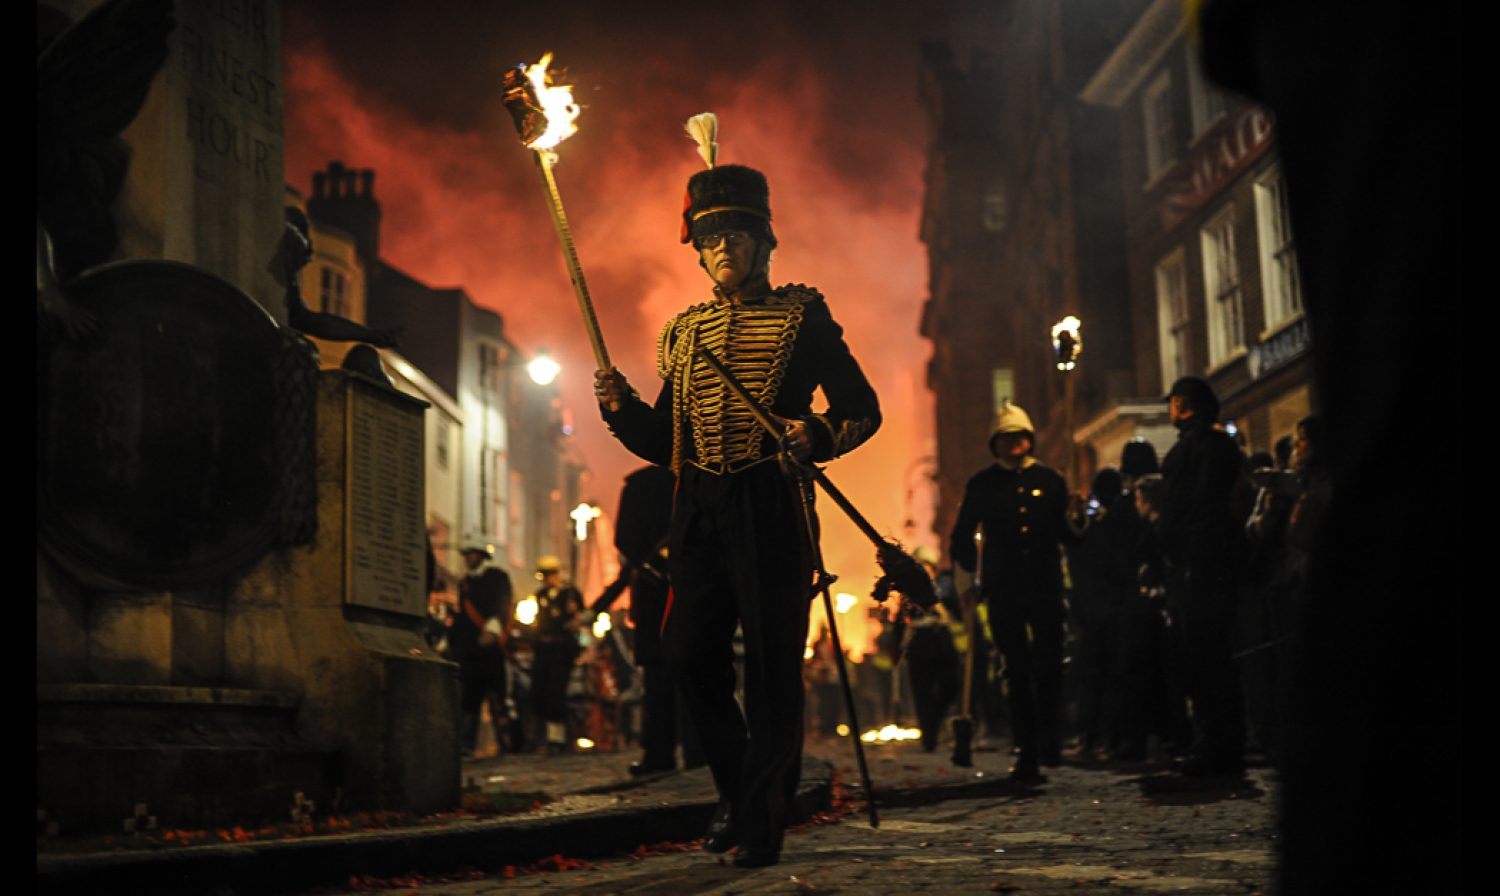 Loud noises, firecrackers, and burning effigies…